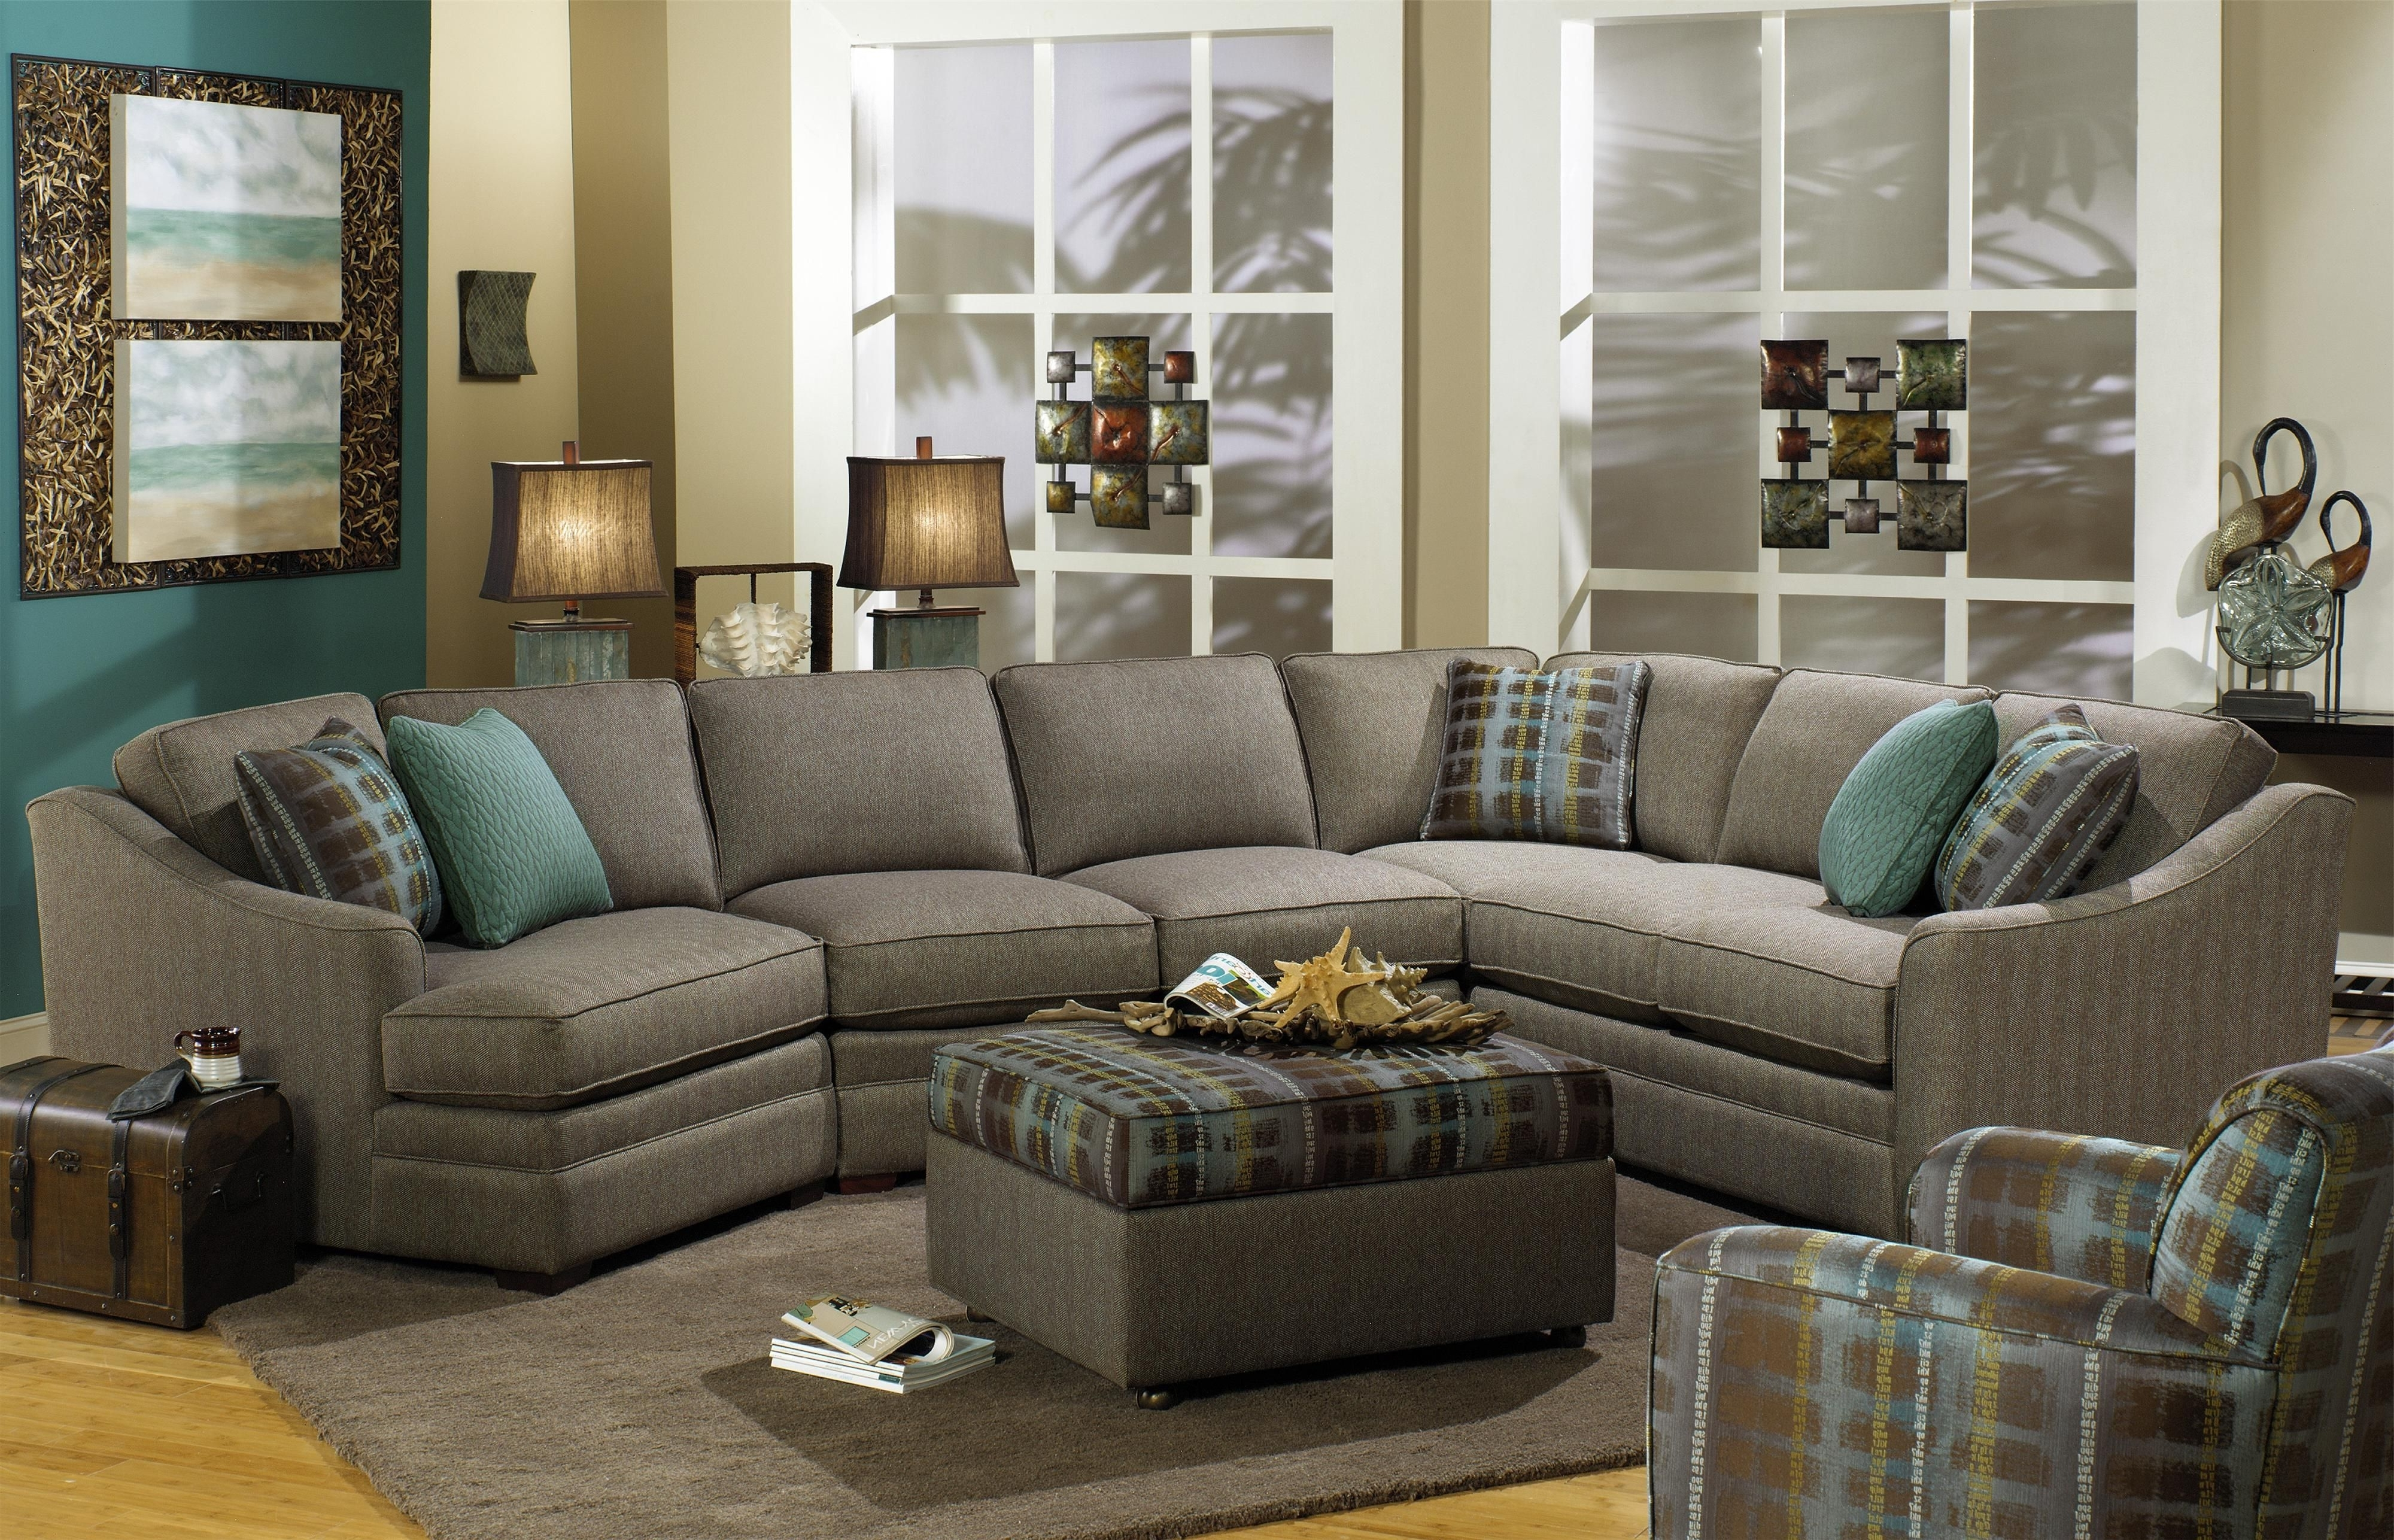 Murfreesboro Tn Sectional Sofas For Fashionable F9 Custom Collection Customizable 3 Piece Sectional With Laf (View 14 of 20)